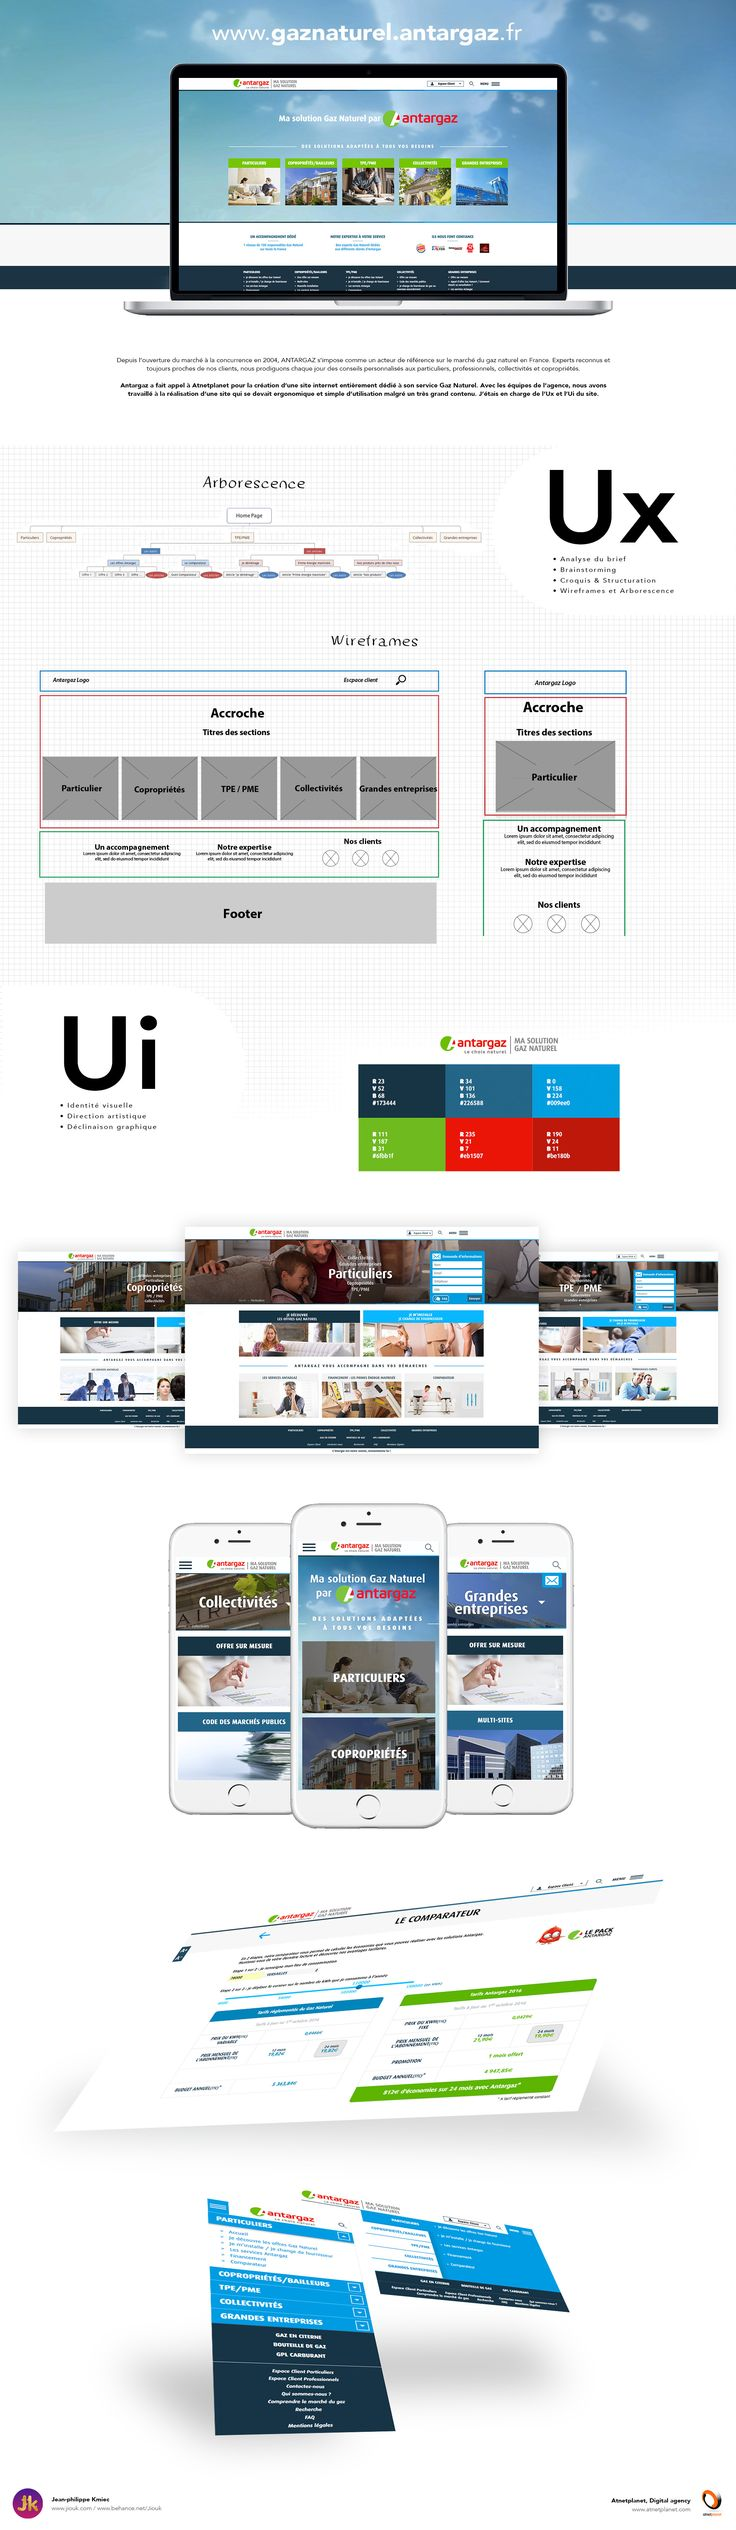 Ui Ux Design du site Gaz Naturel Antargaz